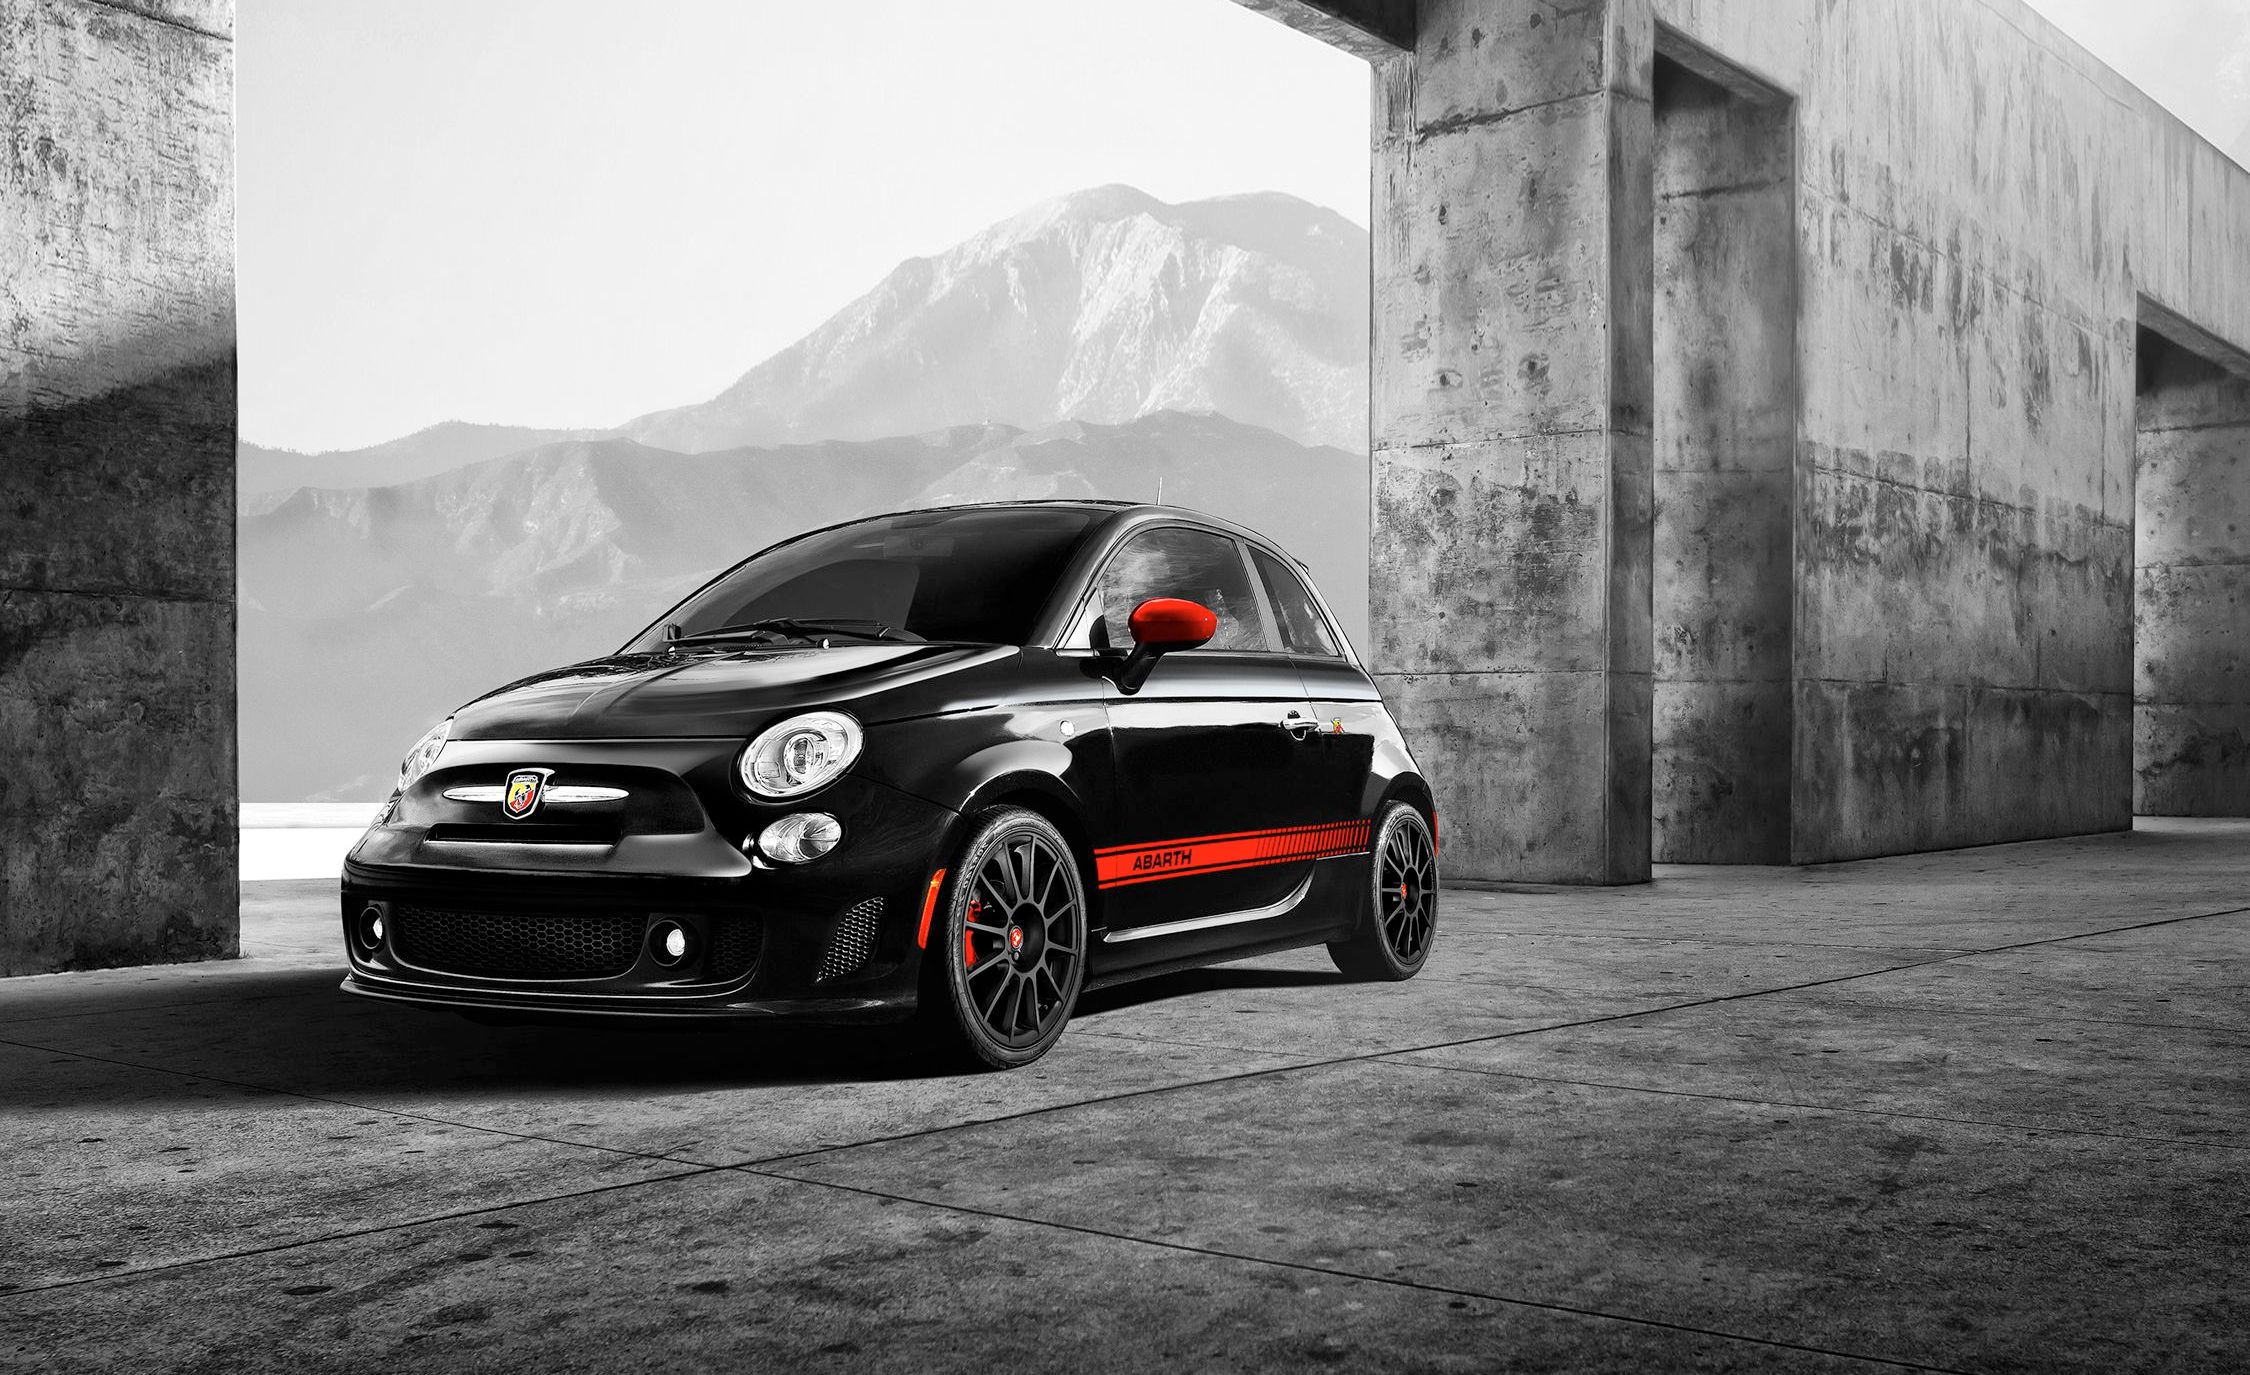 2018 Fiat 500 500c Abarth Reviews Price Photos And Specs Car Driver